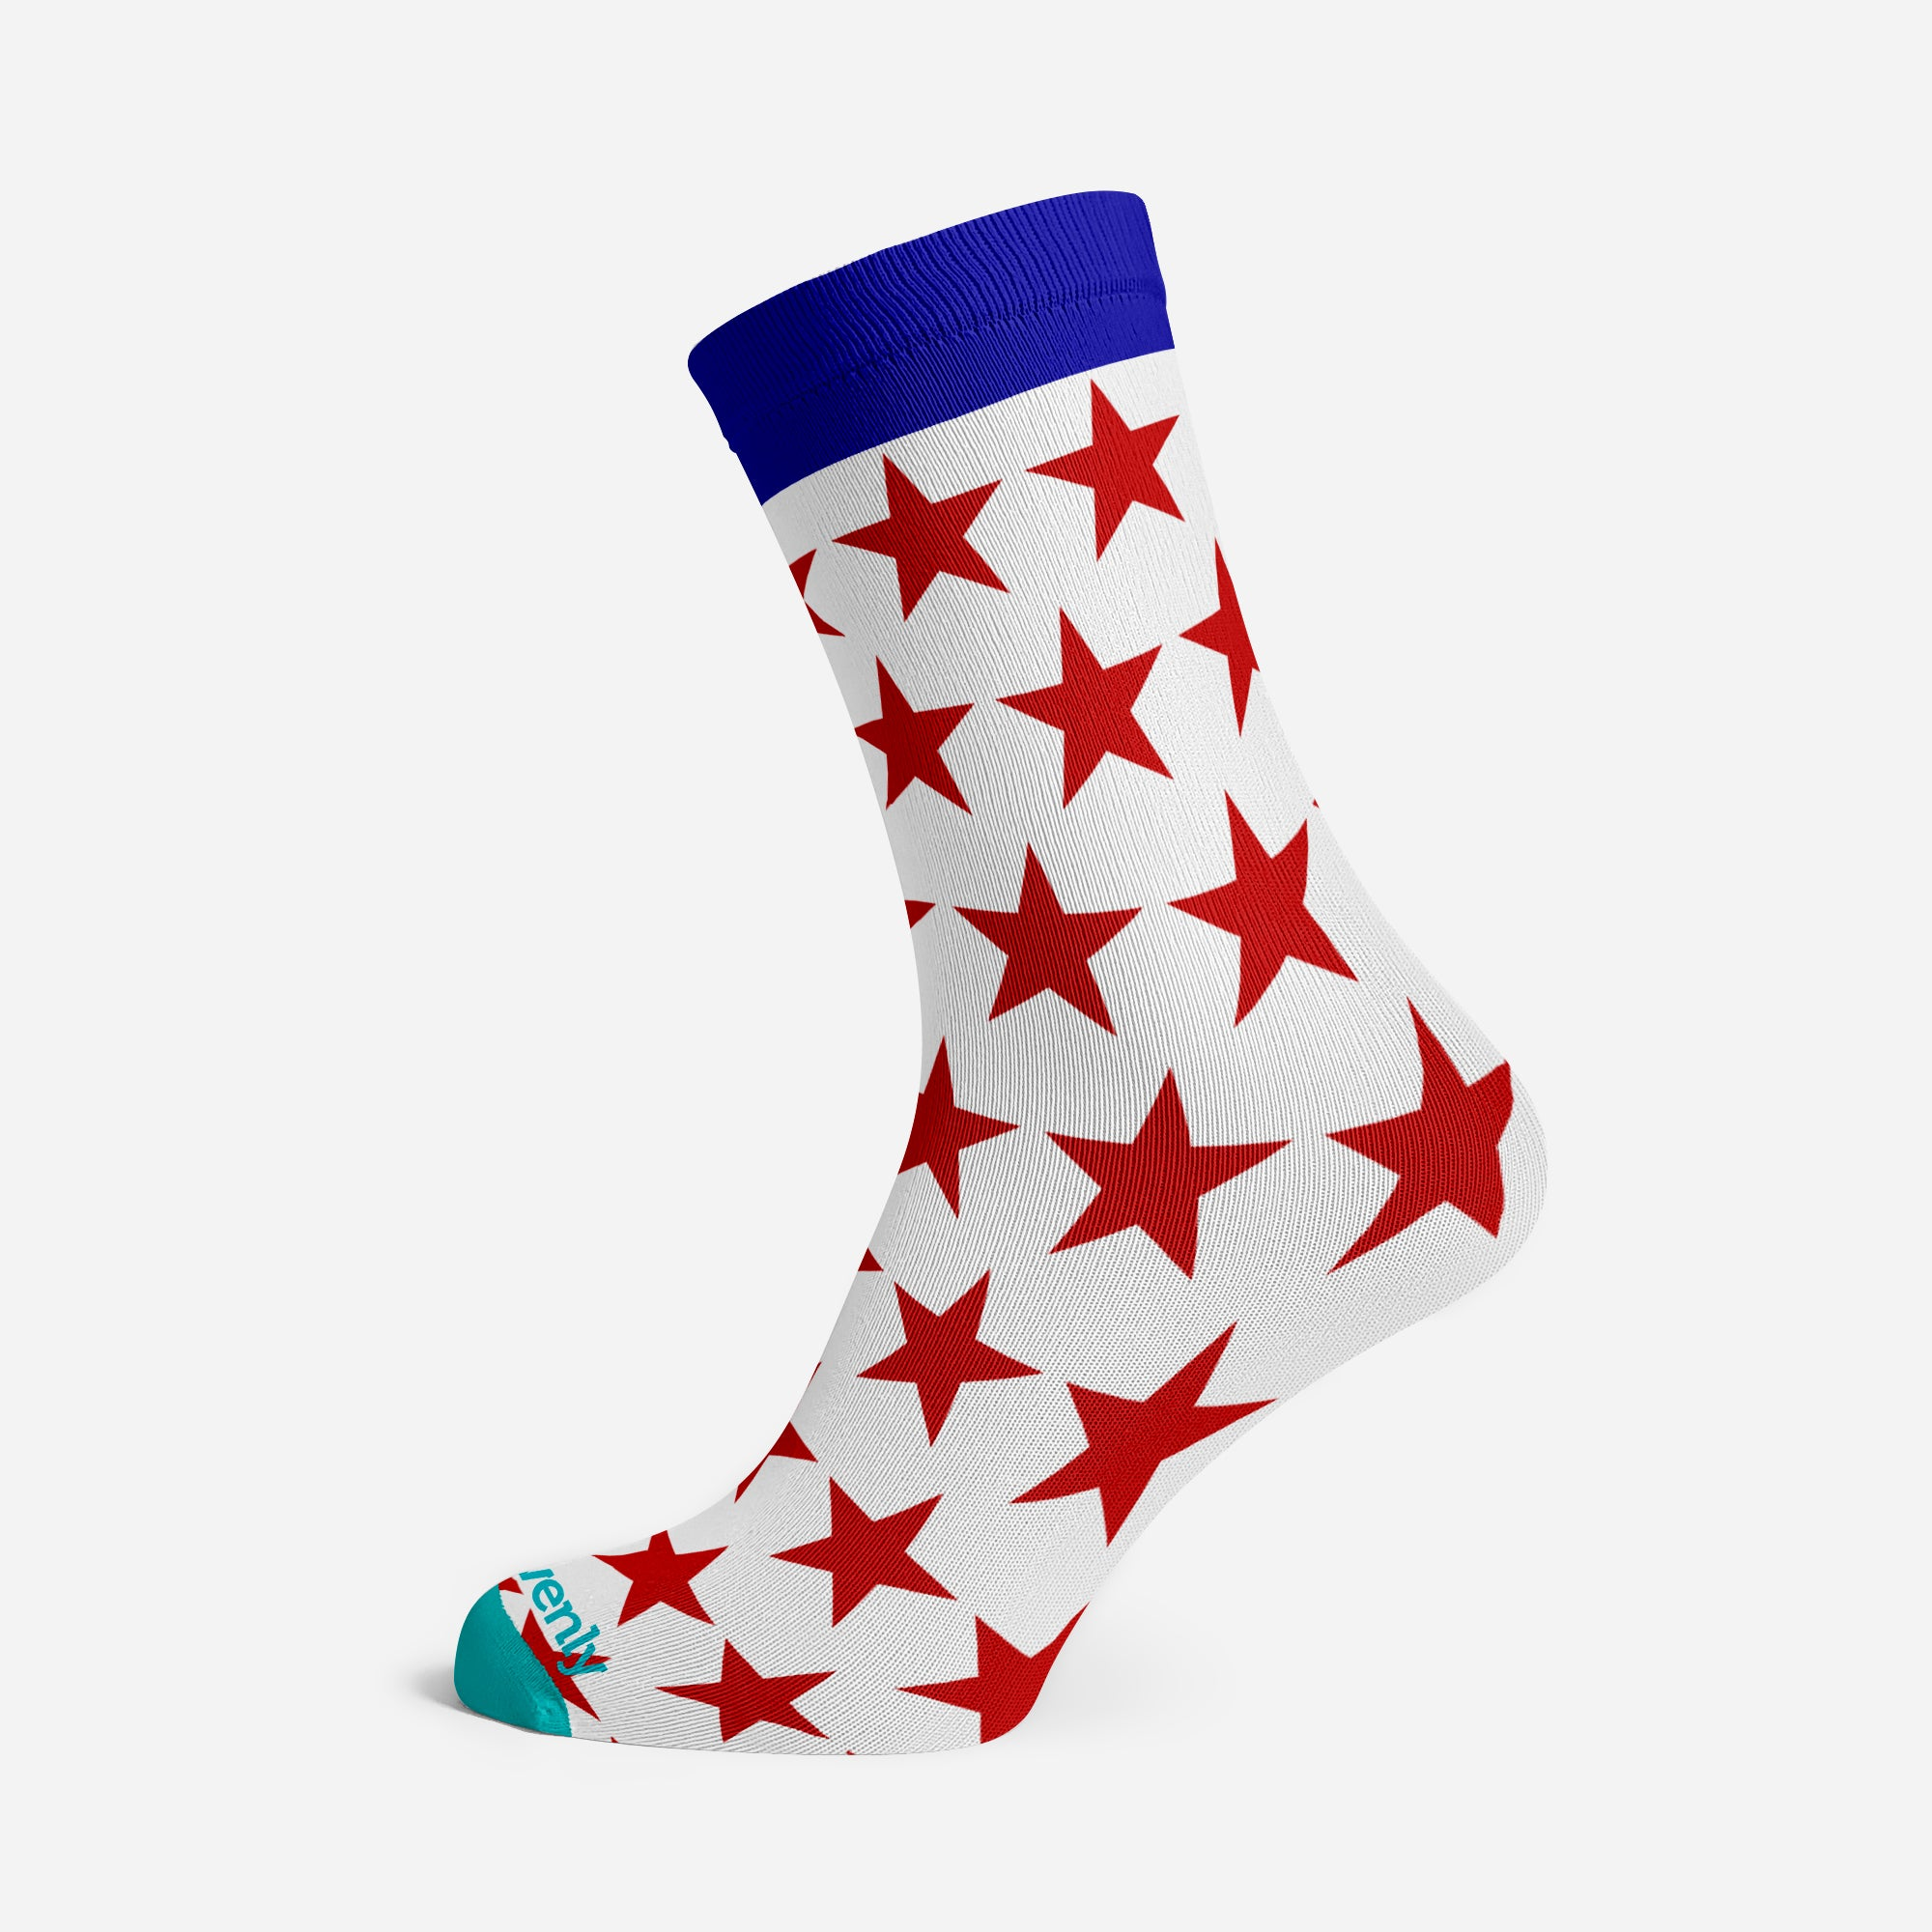 ALL-STAR PREMIUM ADULTS SOCKS